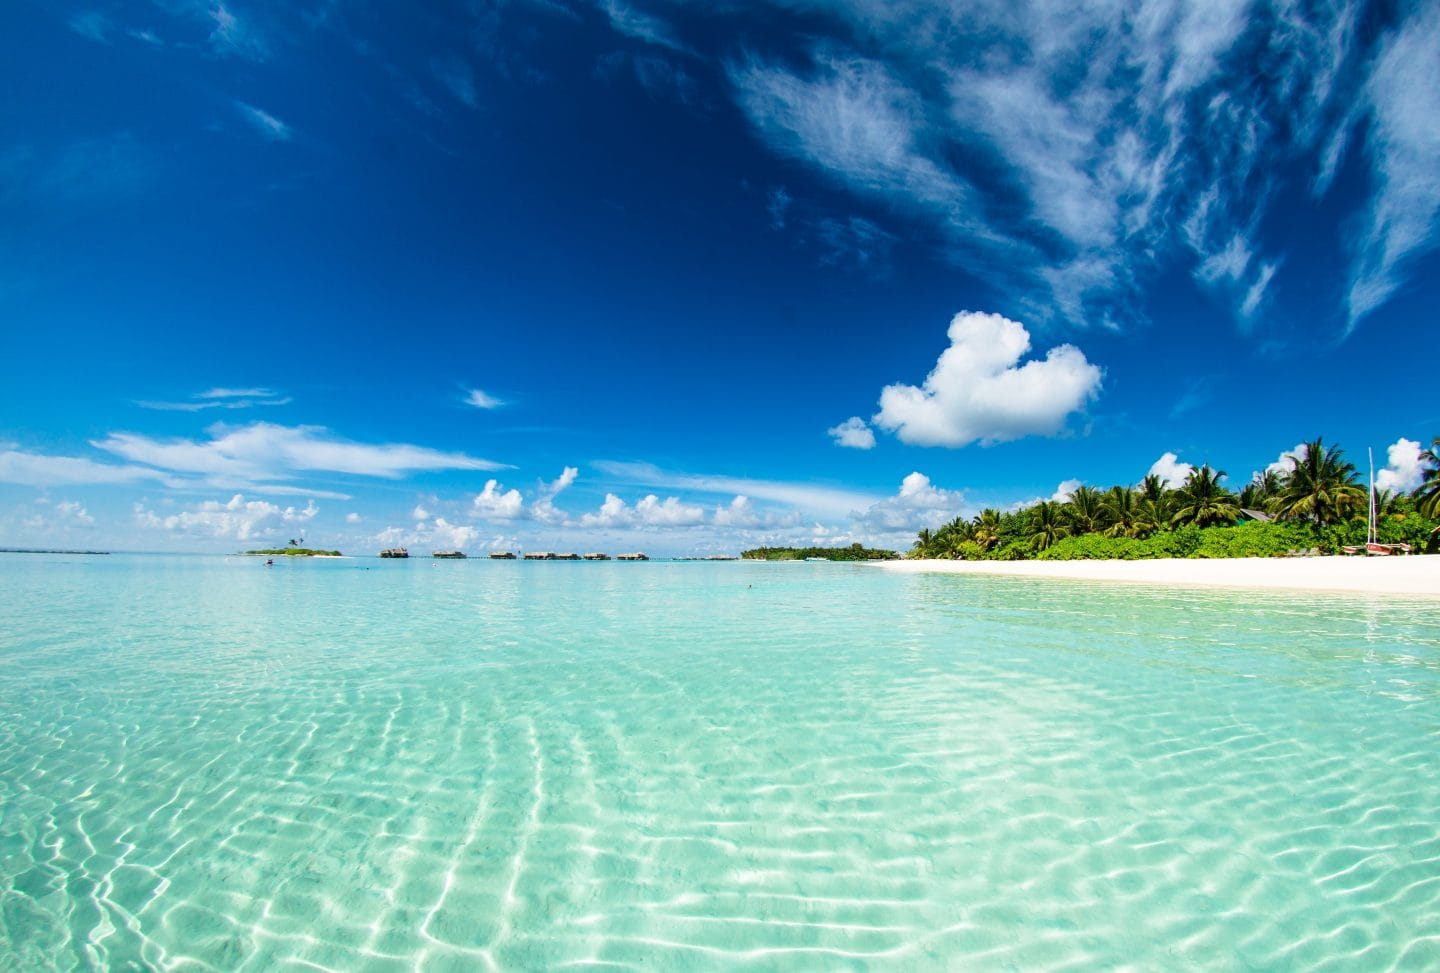 Things to know before visiting The Maldives